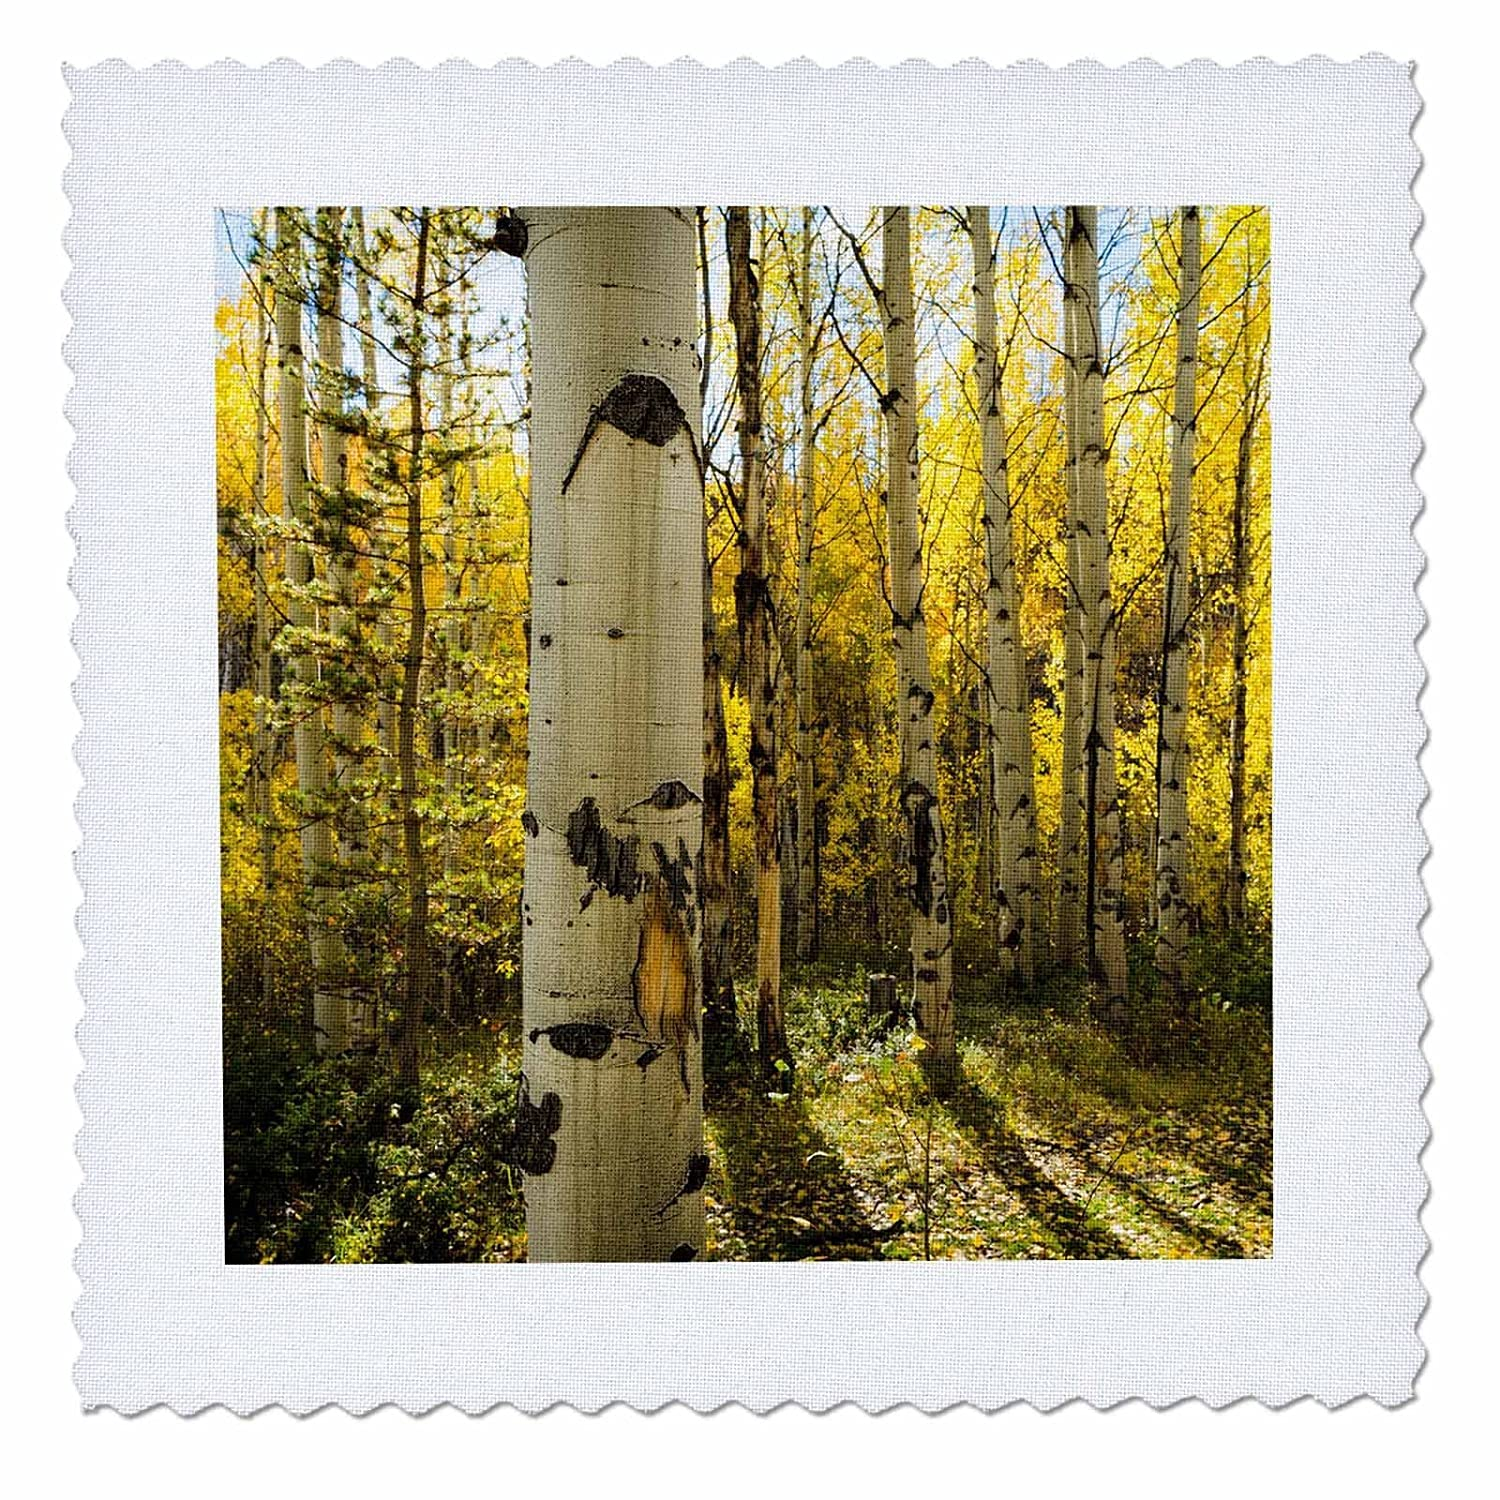 3D Rose Golden Quaking Aspen in Full Fall Color Kinney Creek Colorado Square 12 by 12 Inch Quilt 12 x 12